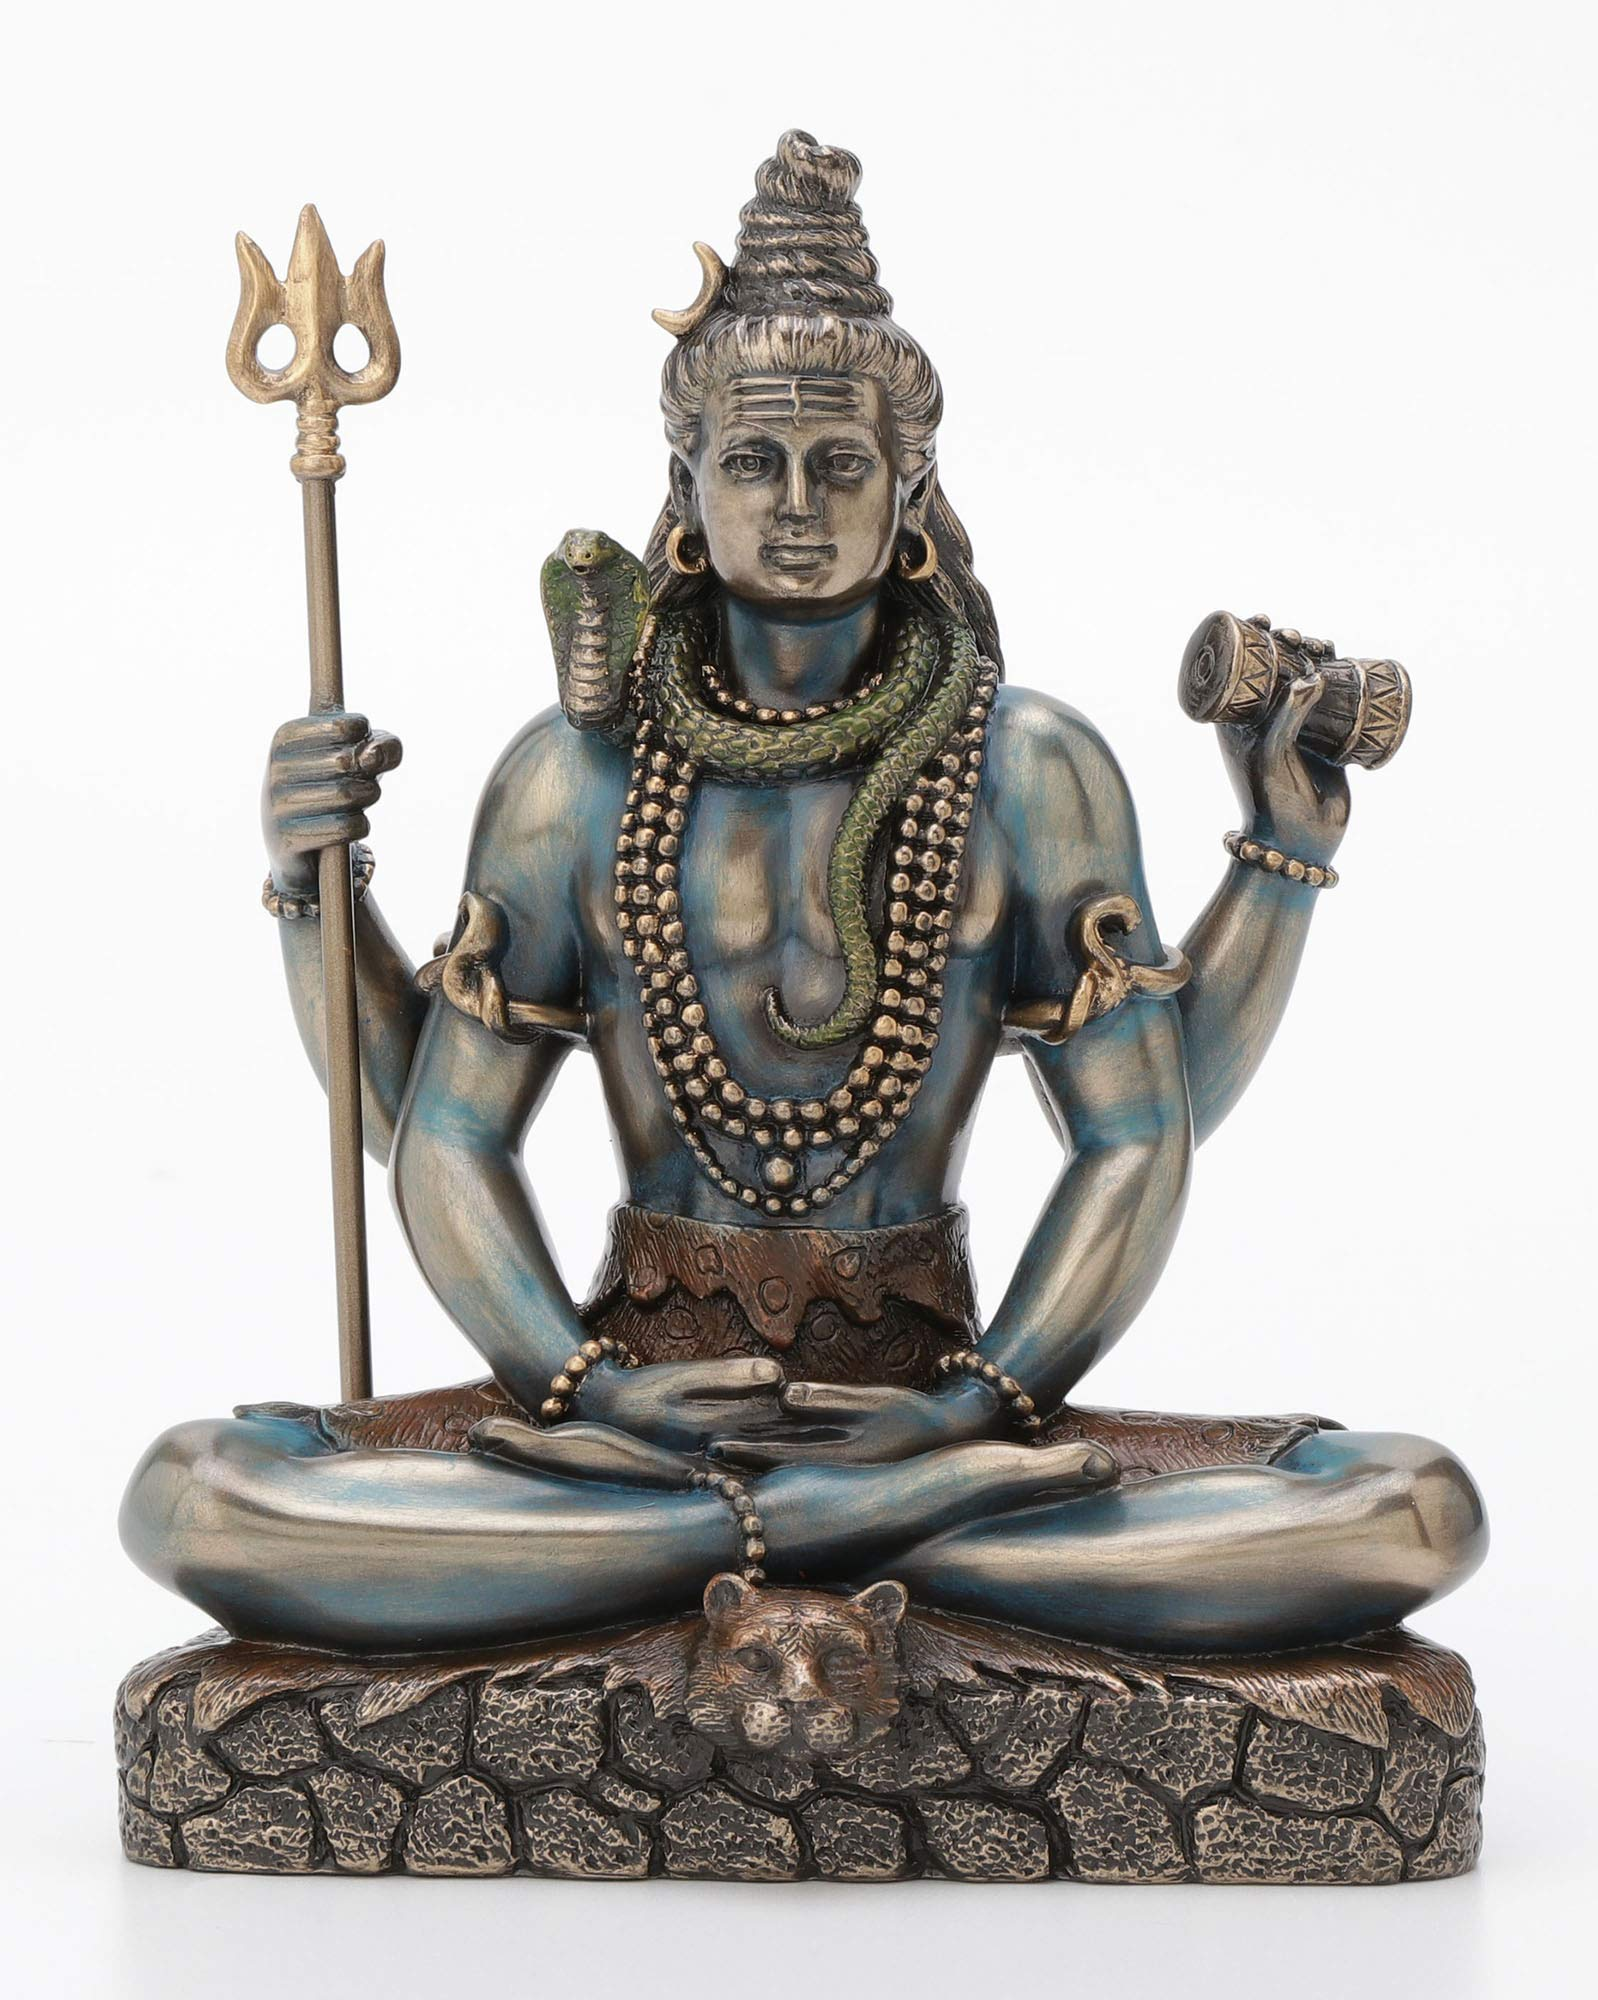 Veronese Design Lord Shiva in Lotus Pose Statue Sculpture - Hindu God and Destroyer of Evil Figure 6.2'' Tall by Veronese Design